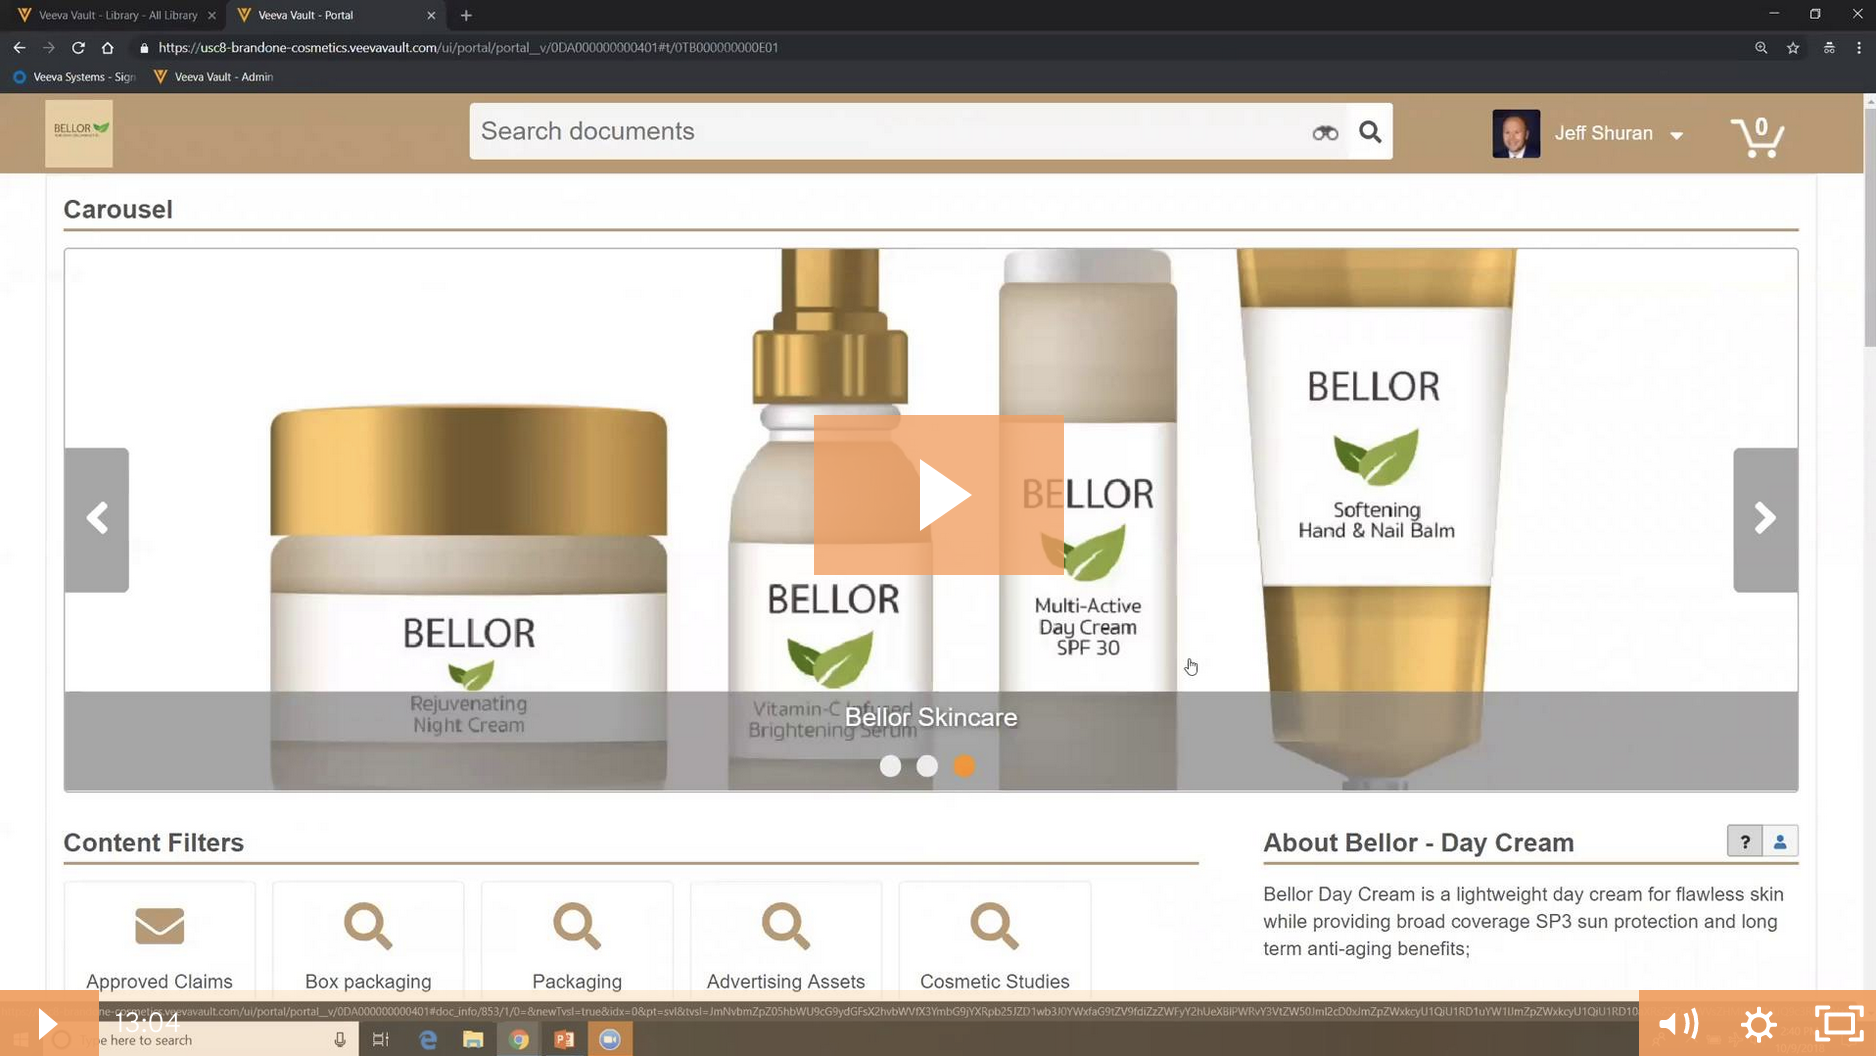 Veeva Solutions for the Cosmetics Industry